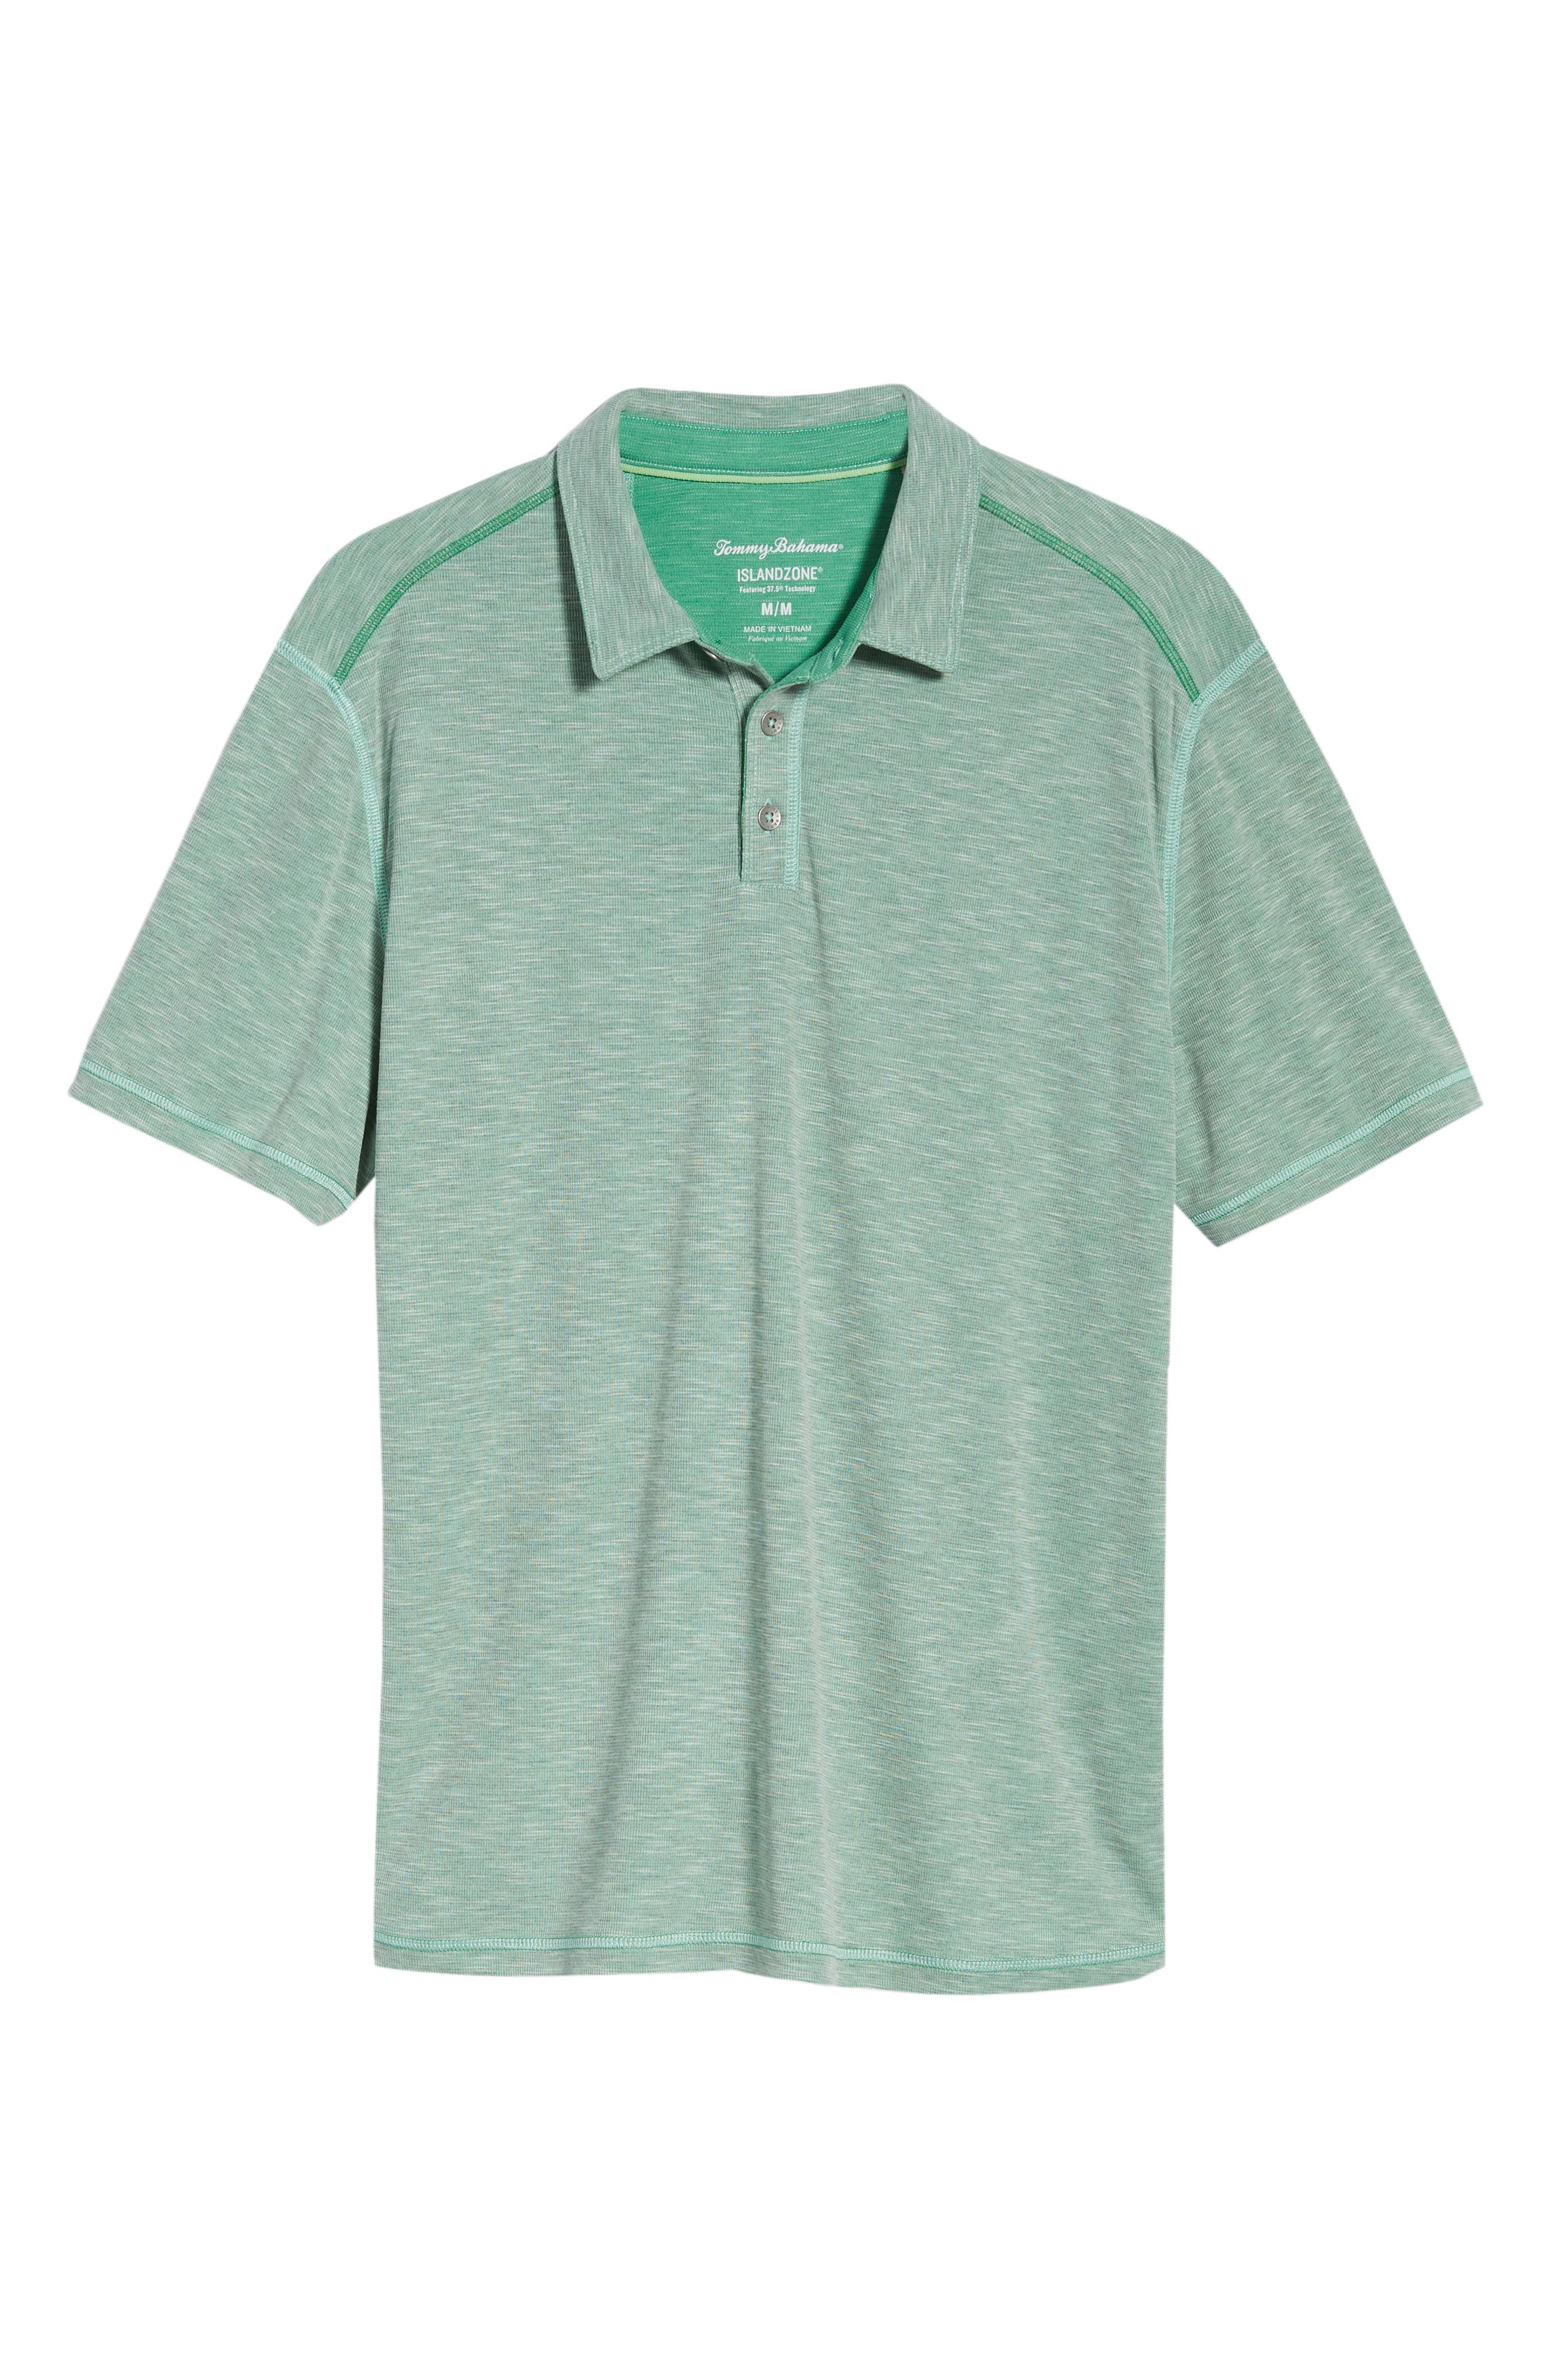 Flip Tide Tee Spectator Polo,                             Alternate thumbnail 6, color,                             Green Finch